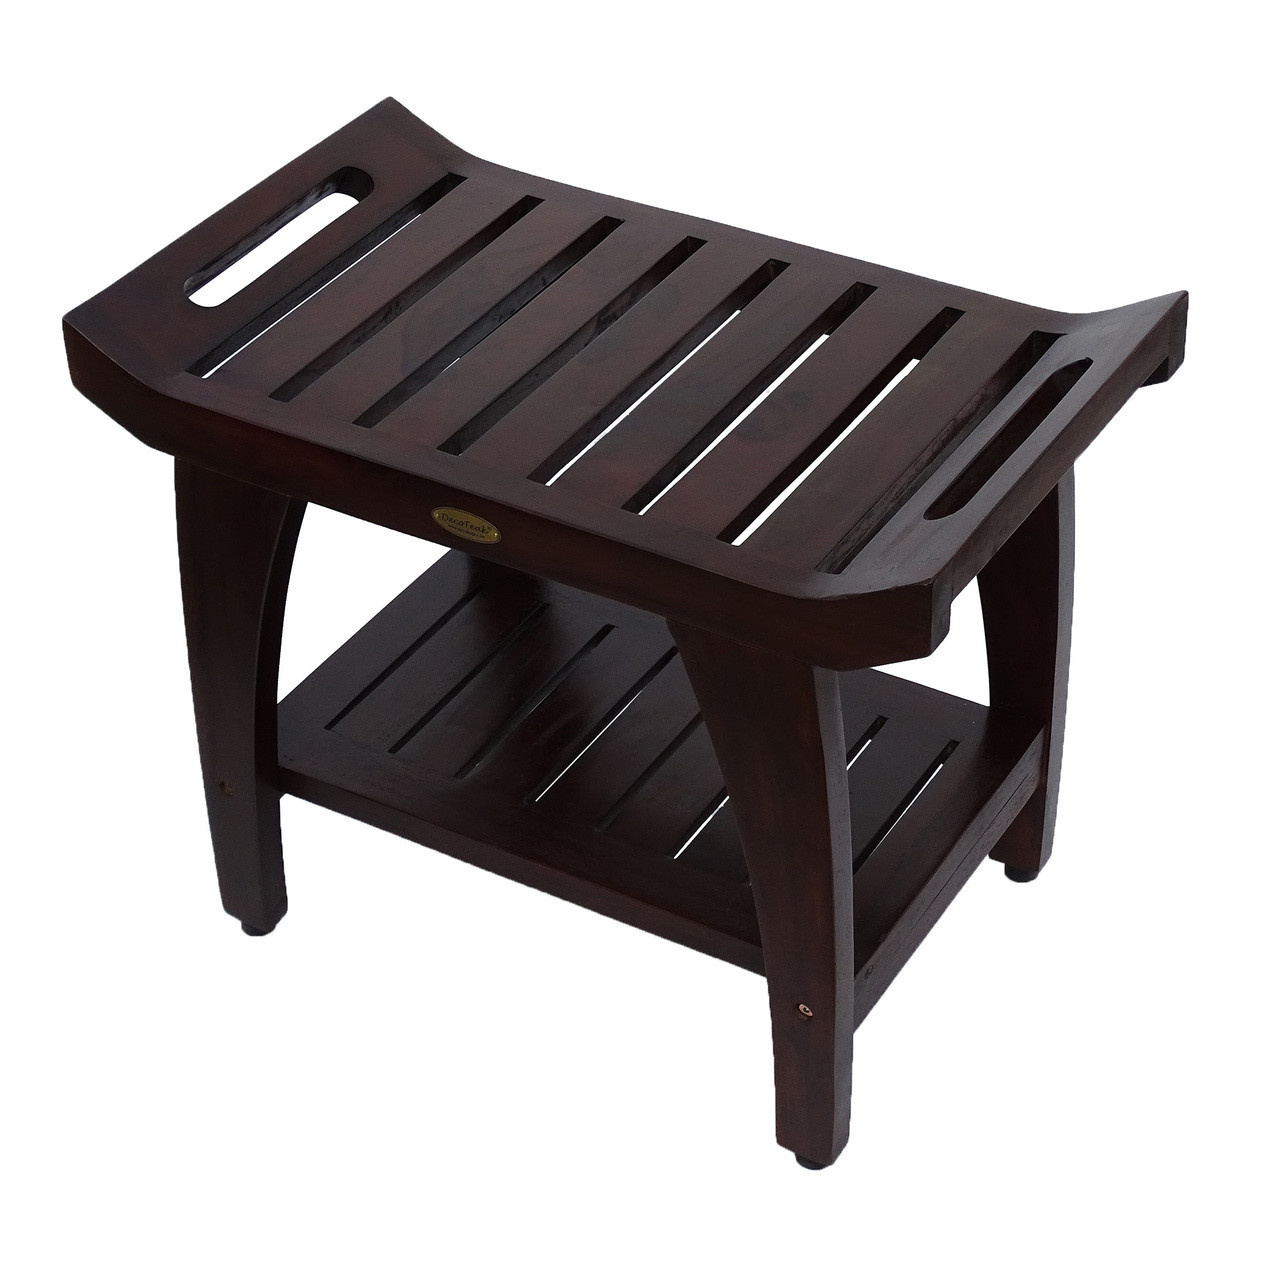 Picture of: Decoteak Tranquility 24 Inch Teak Shower Bench